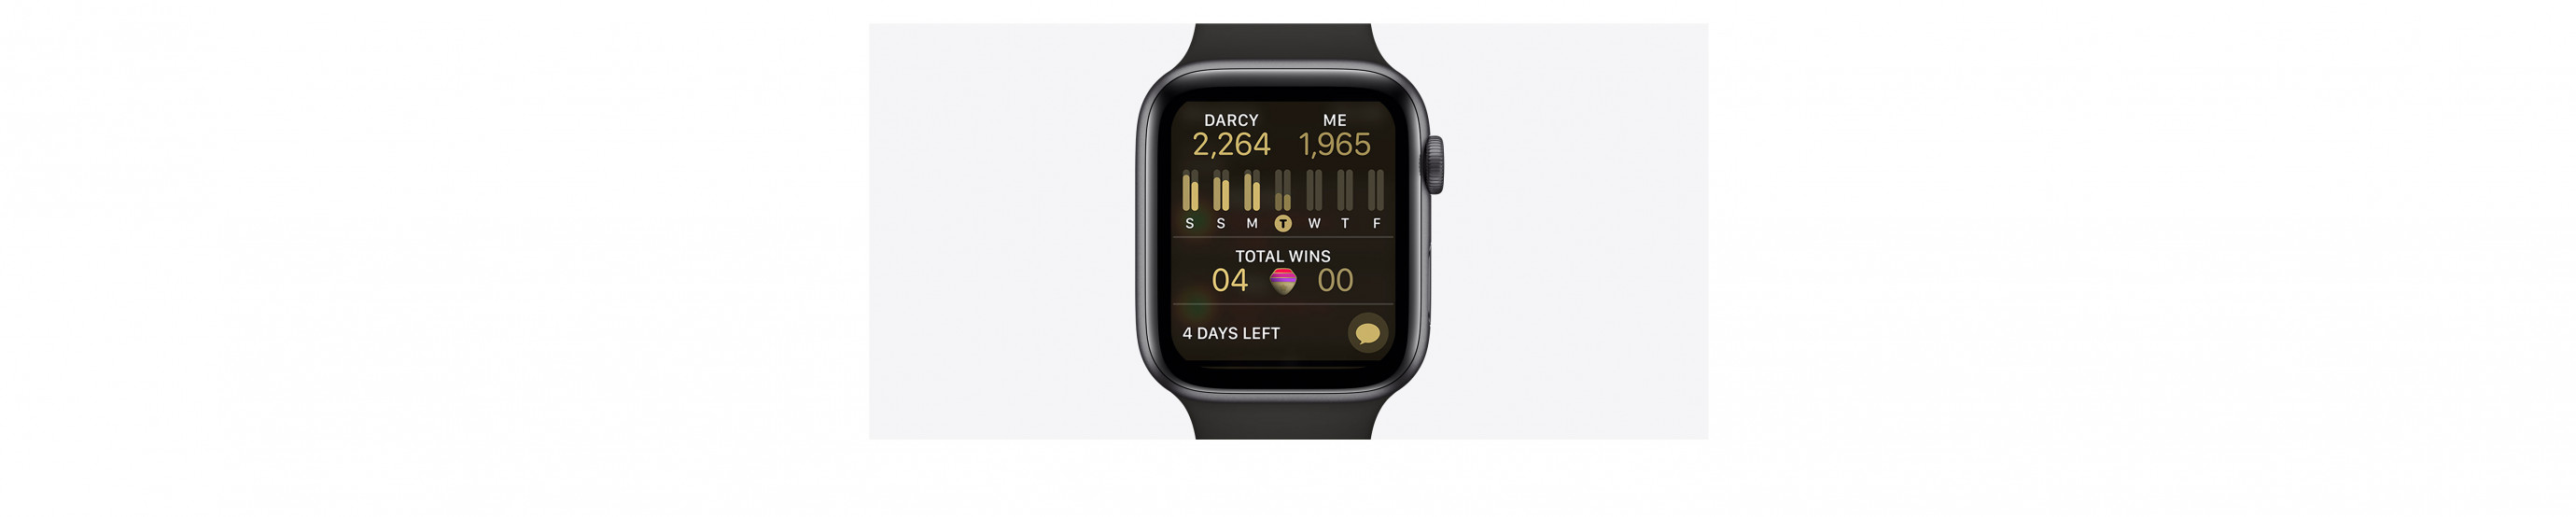 AppleWatchSeries5-productpage_10.jpg